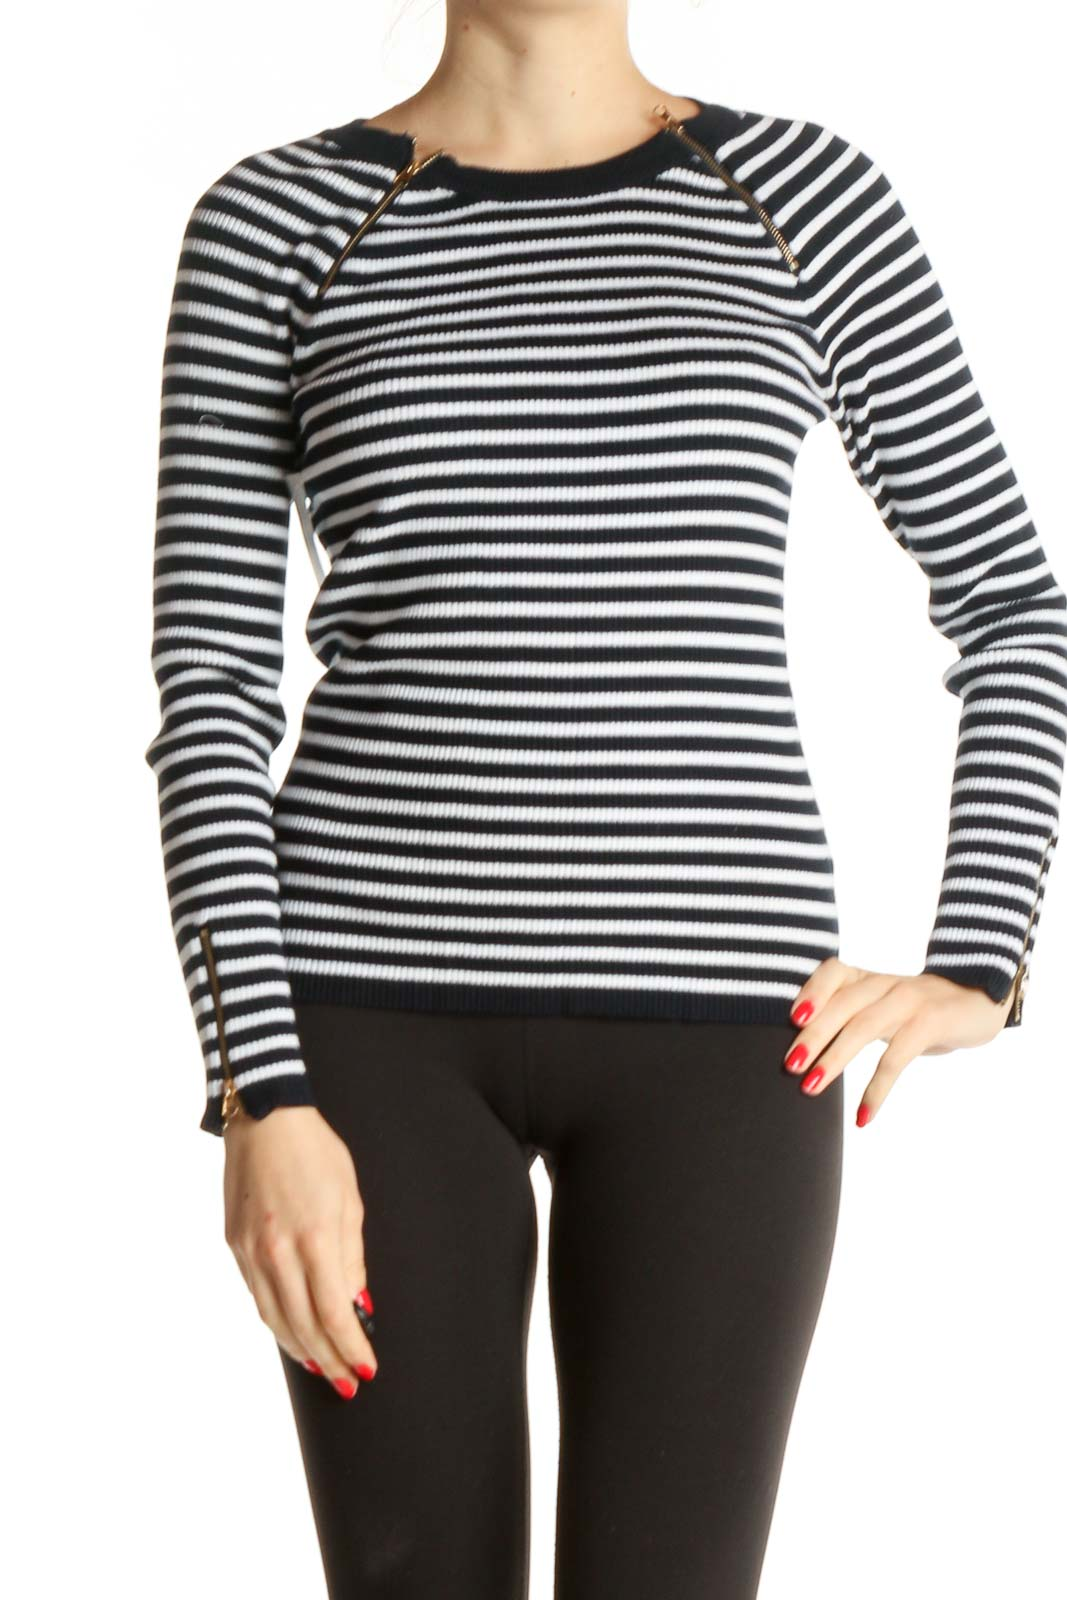 White Striped Casual Top Front